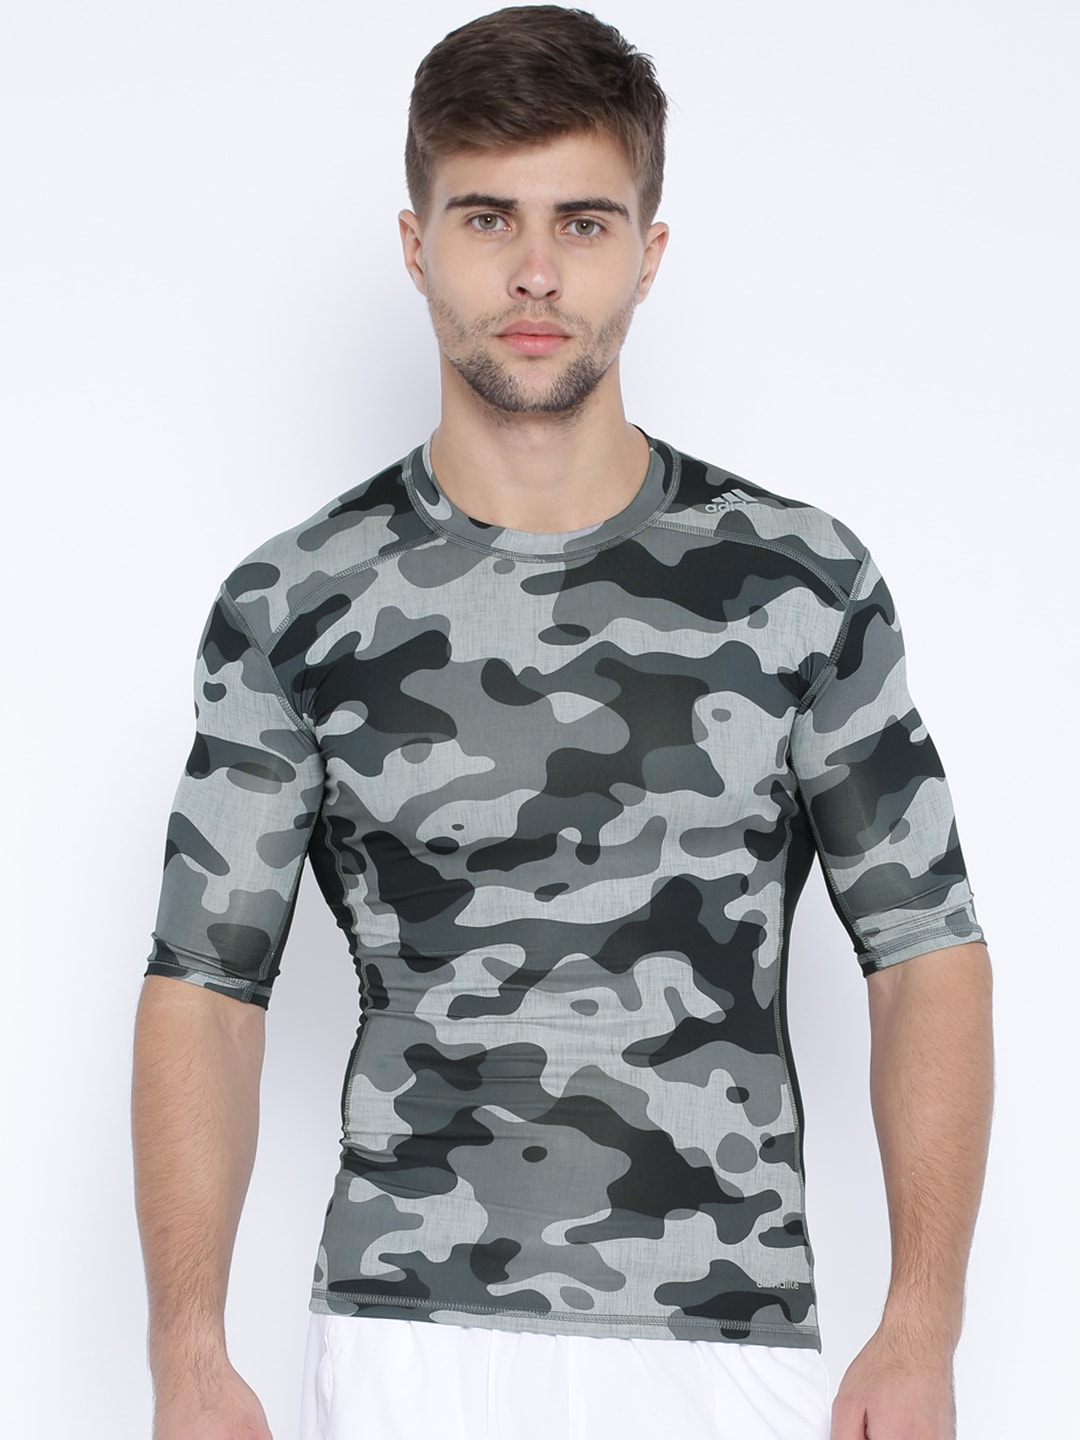 bc82575b4 Adidas aj4976 Black And Grey Techfit Base Camouflage Print Compression T  Shirt- Price in India